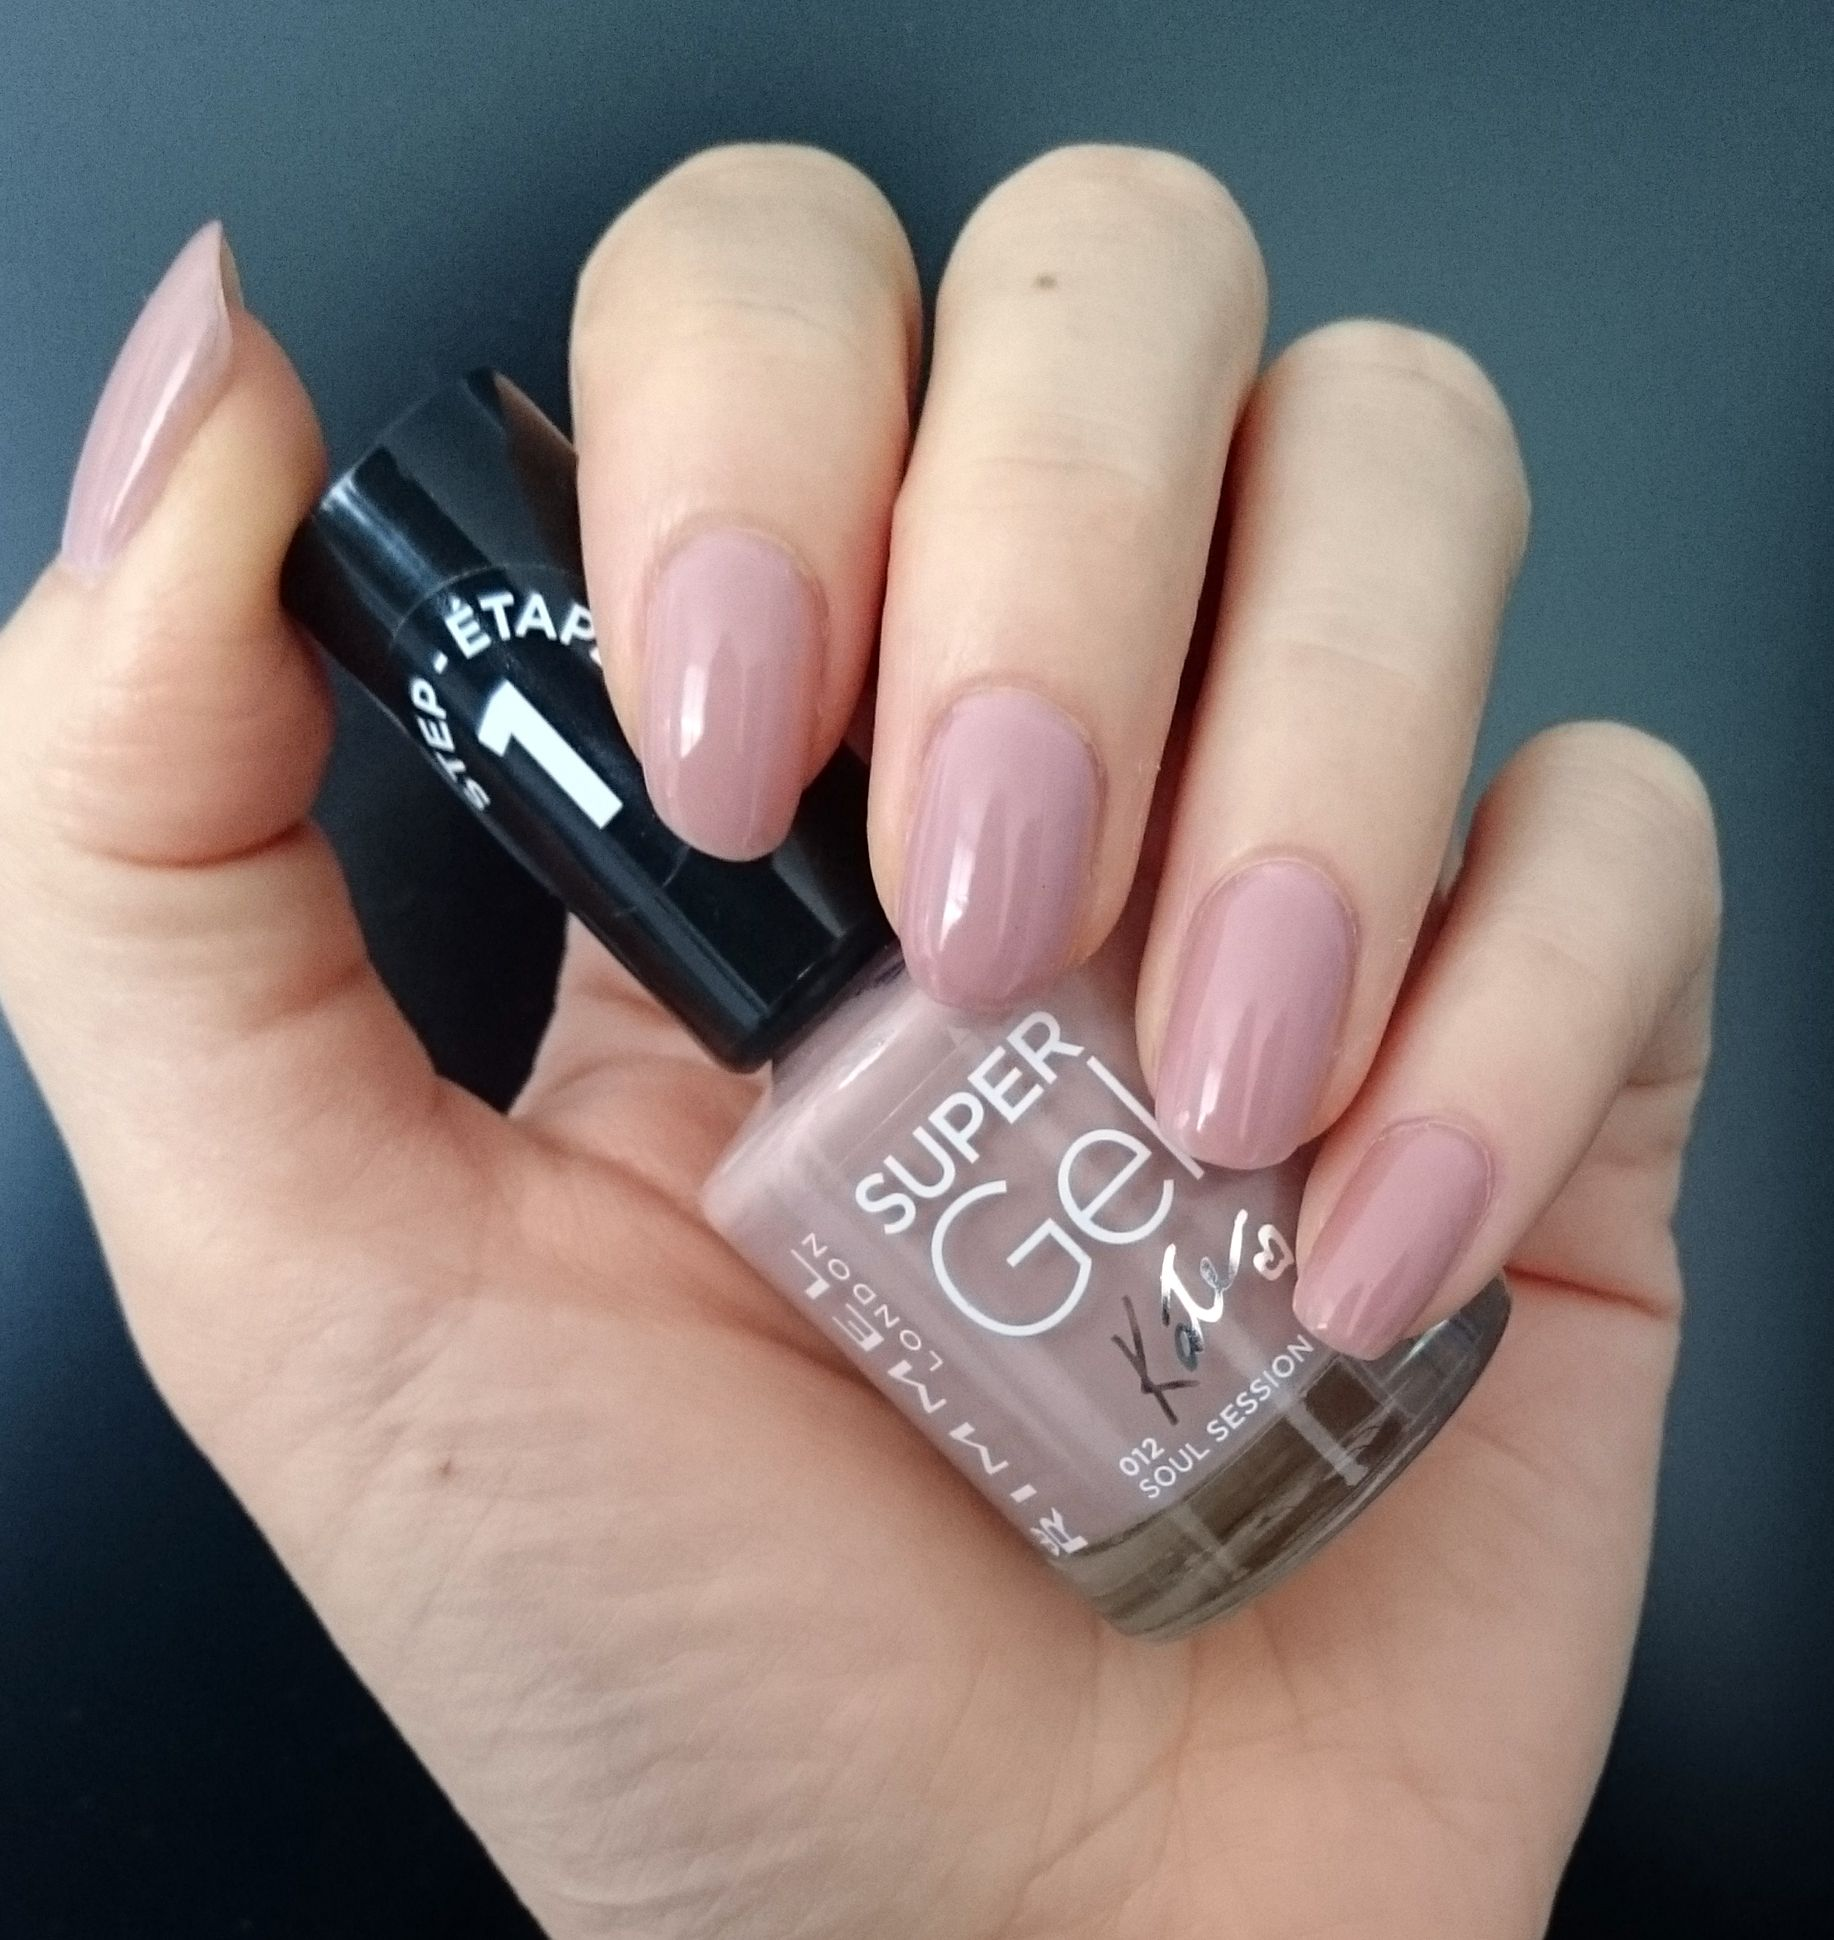 Rimmel Super Gel Nail Polish Soul Session 2 Coats Looks More Pink